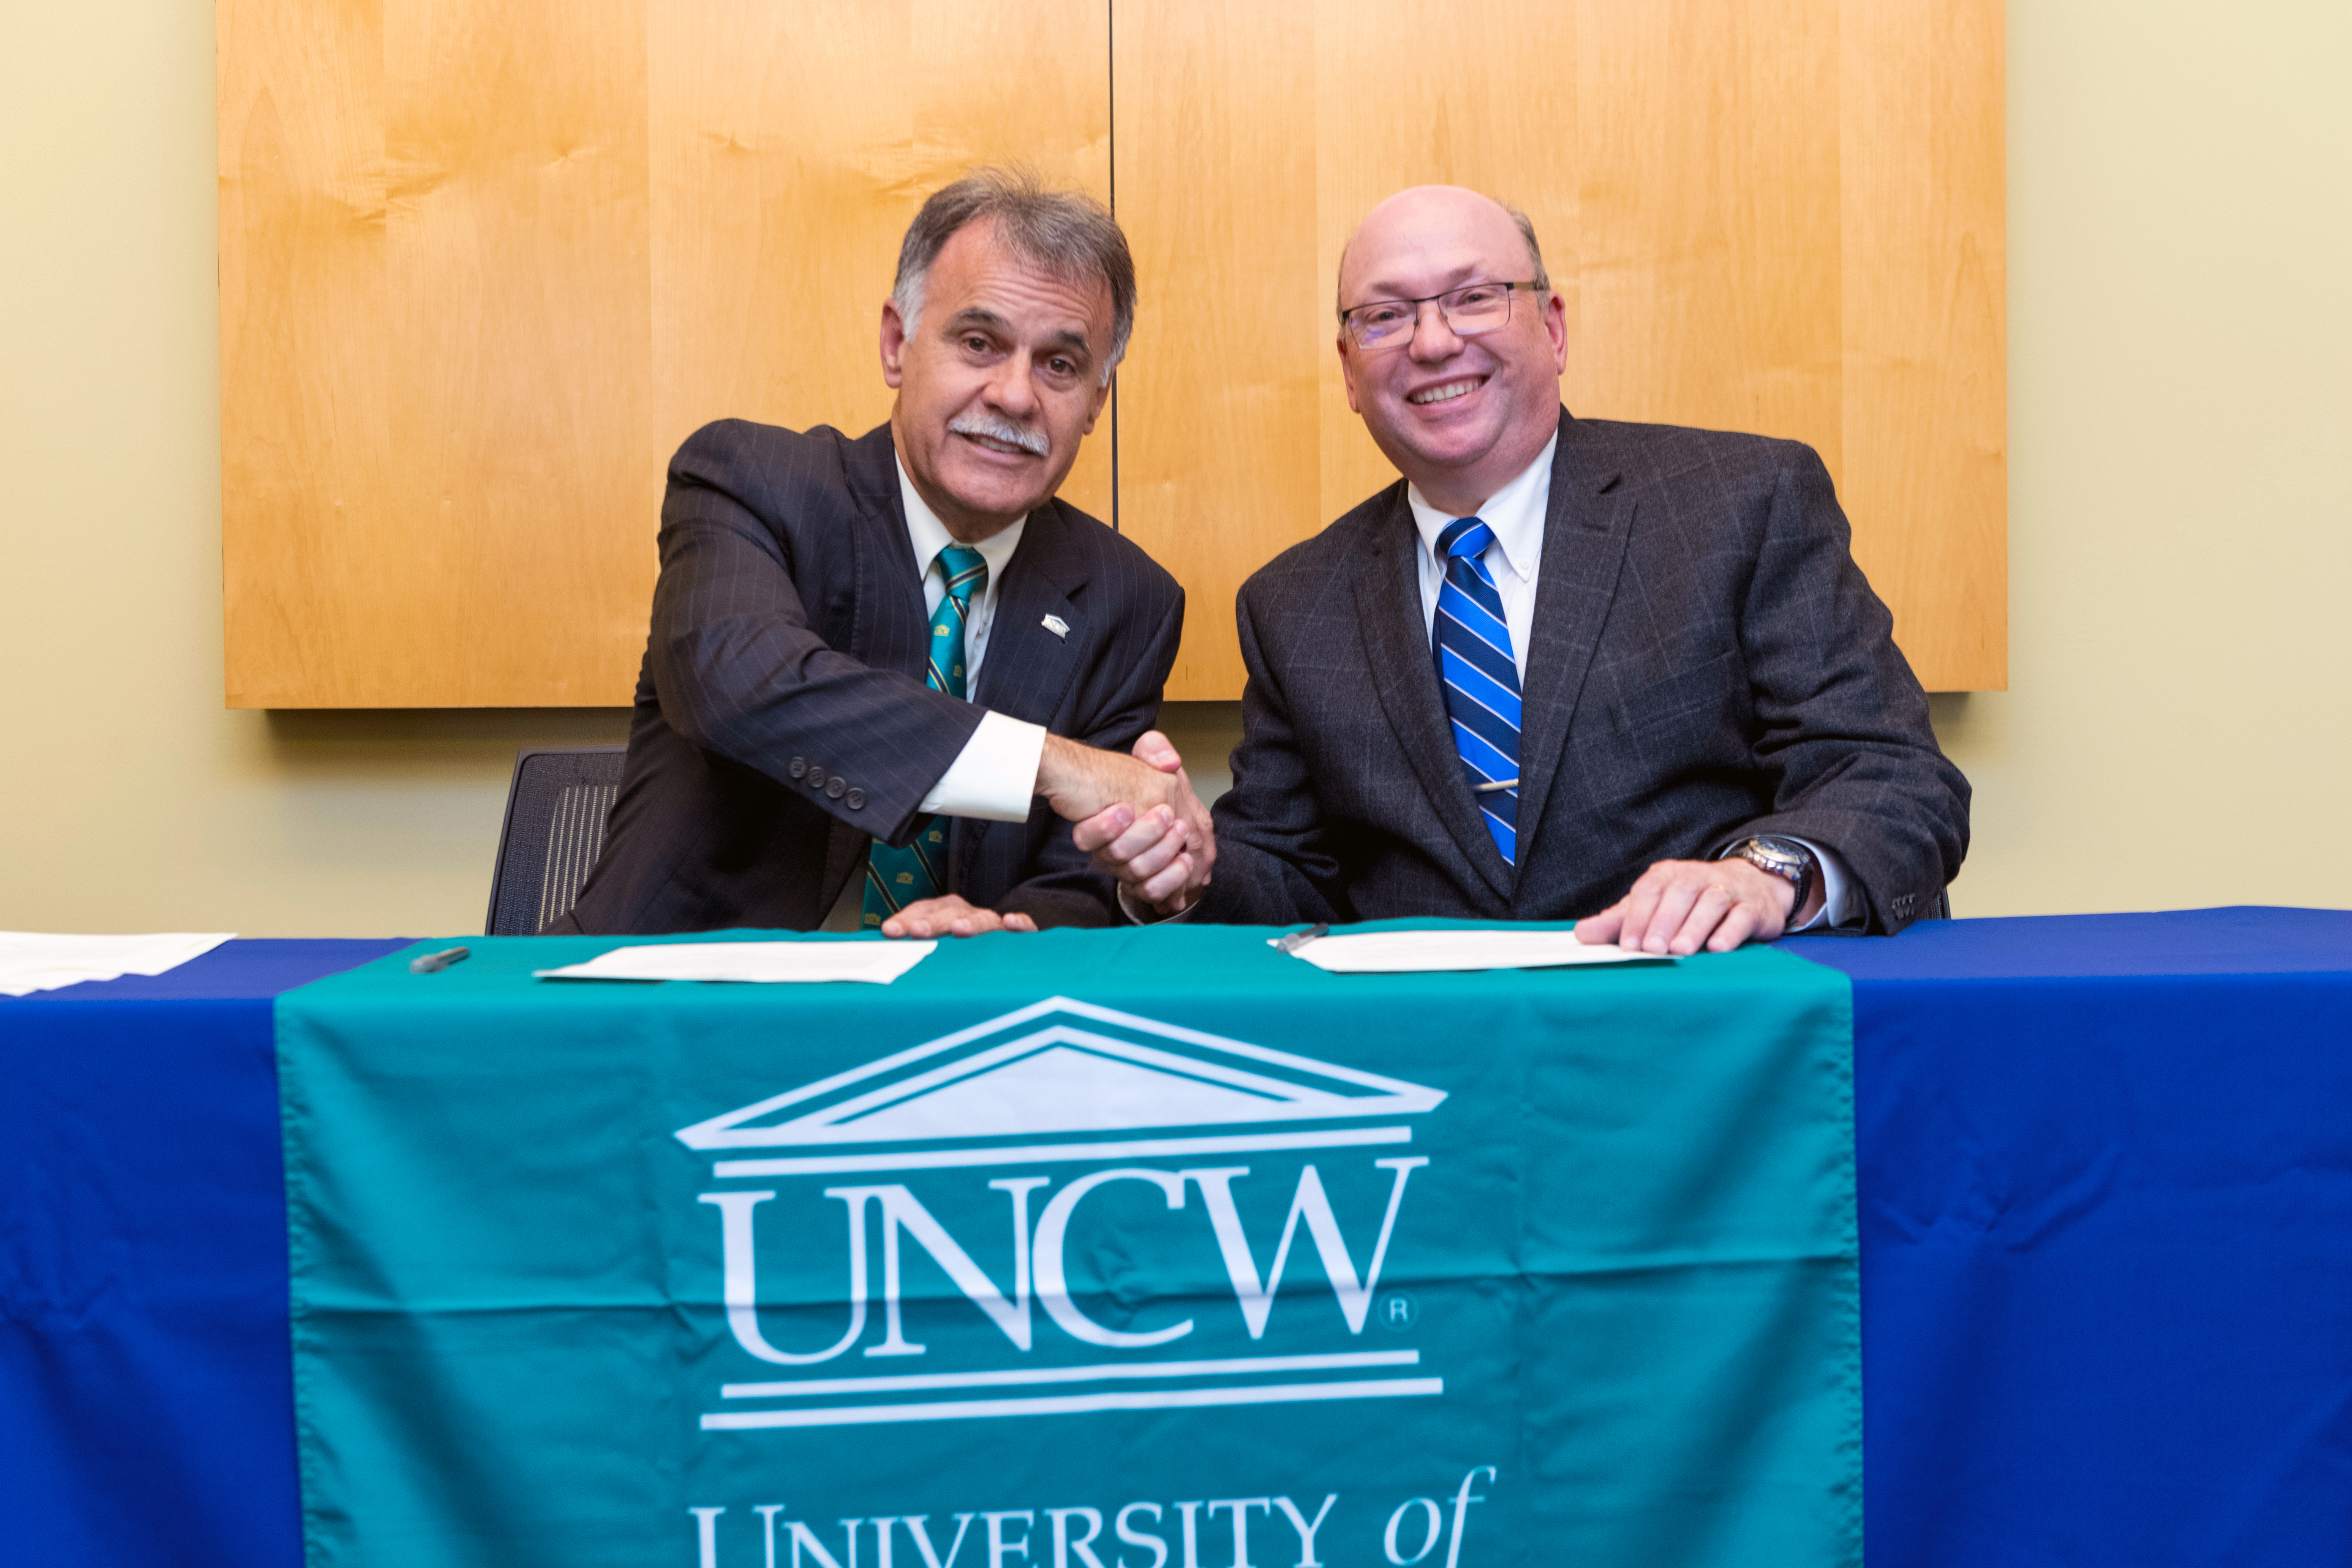 The UNCW Chancellor and the RichmondCC President pose together at a table.